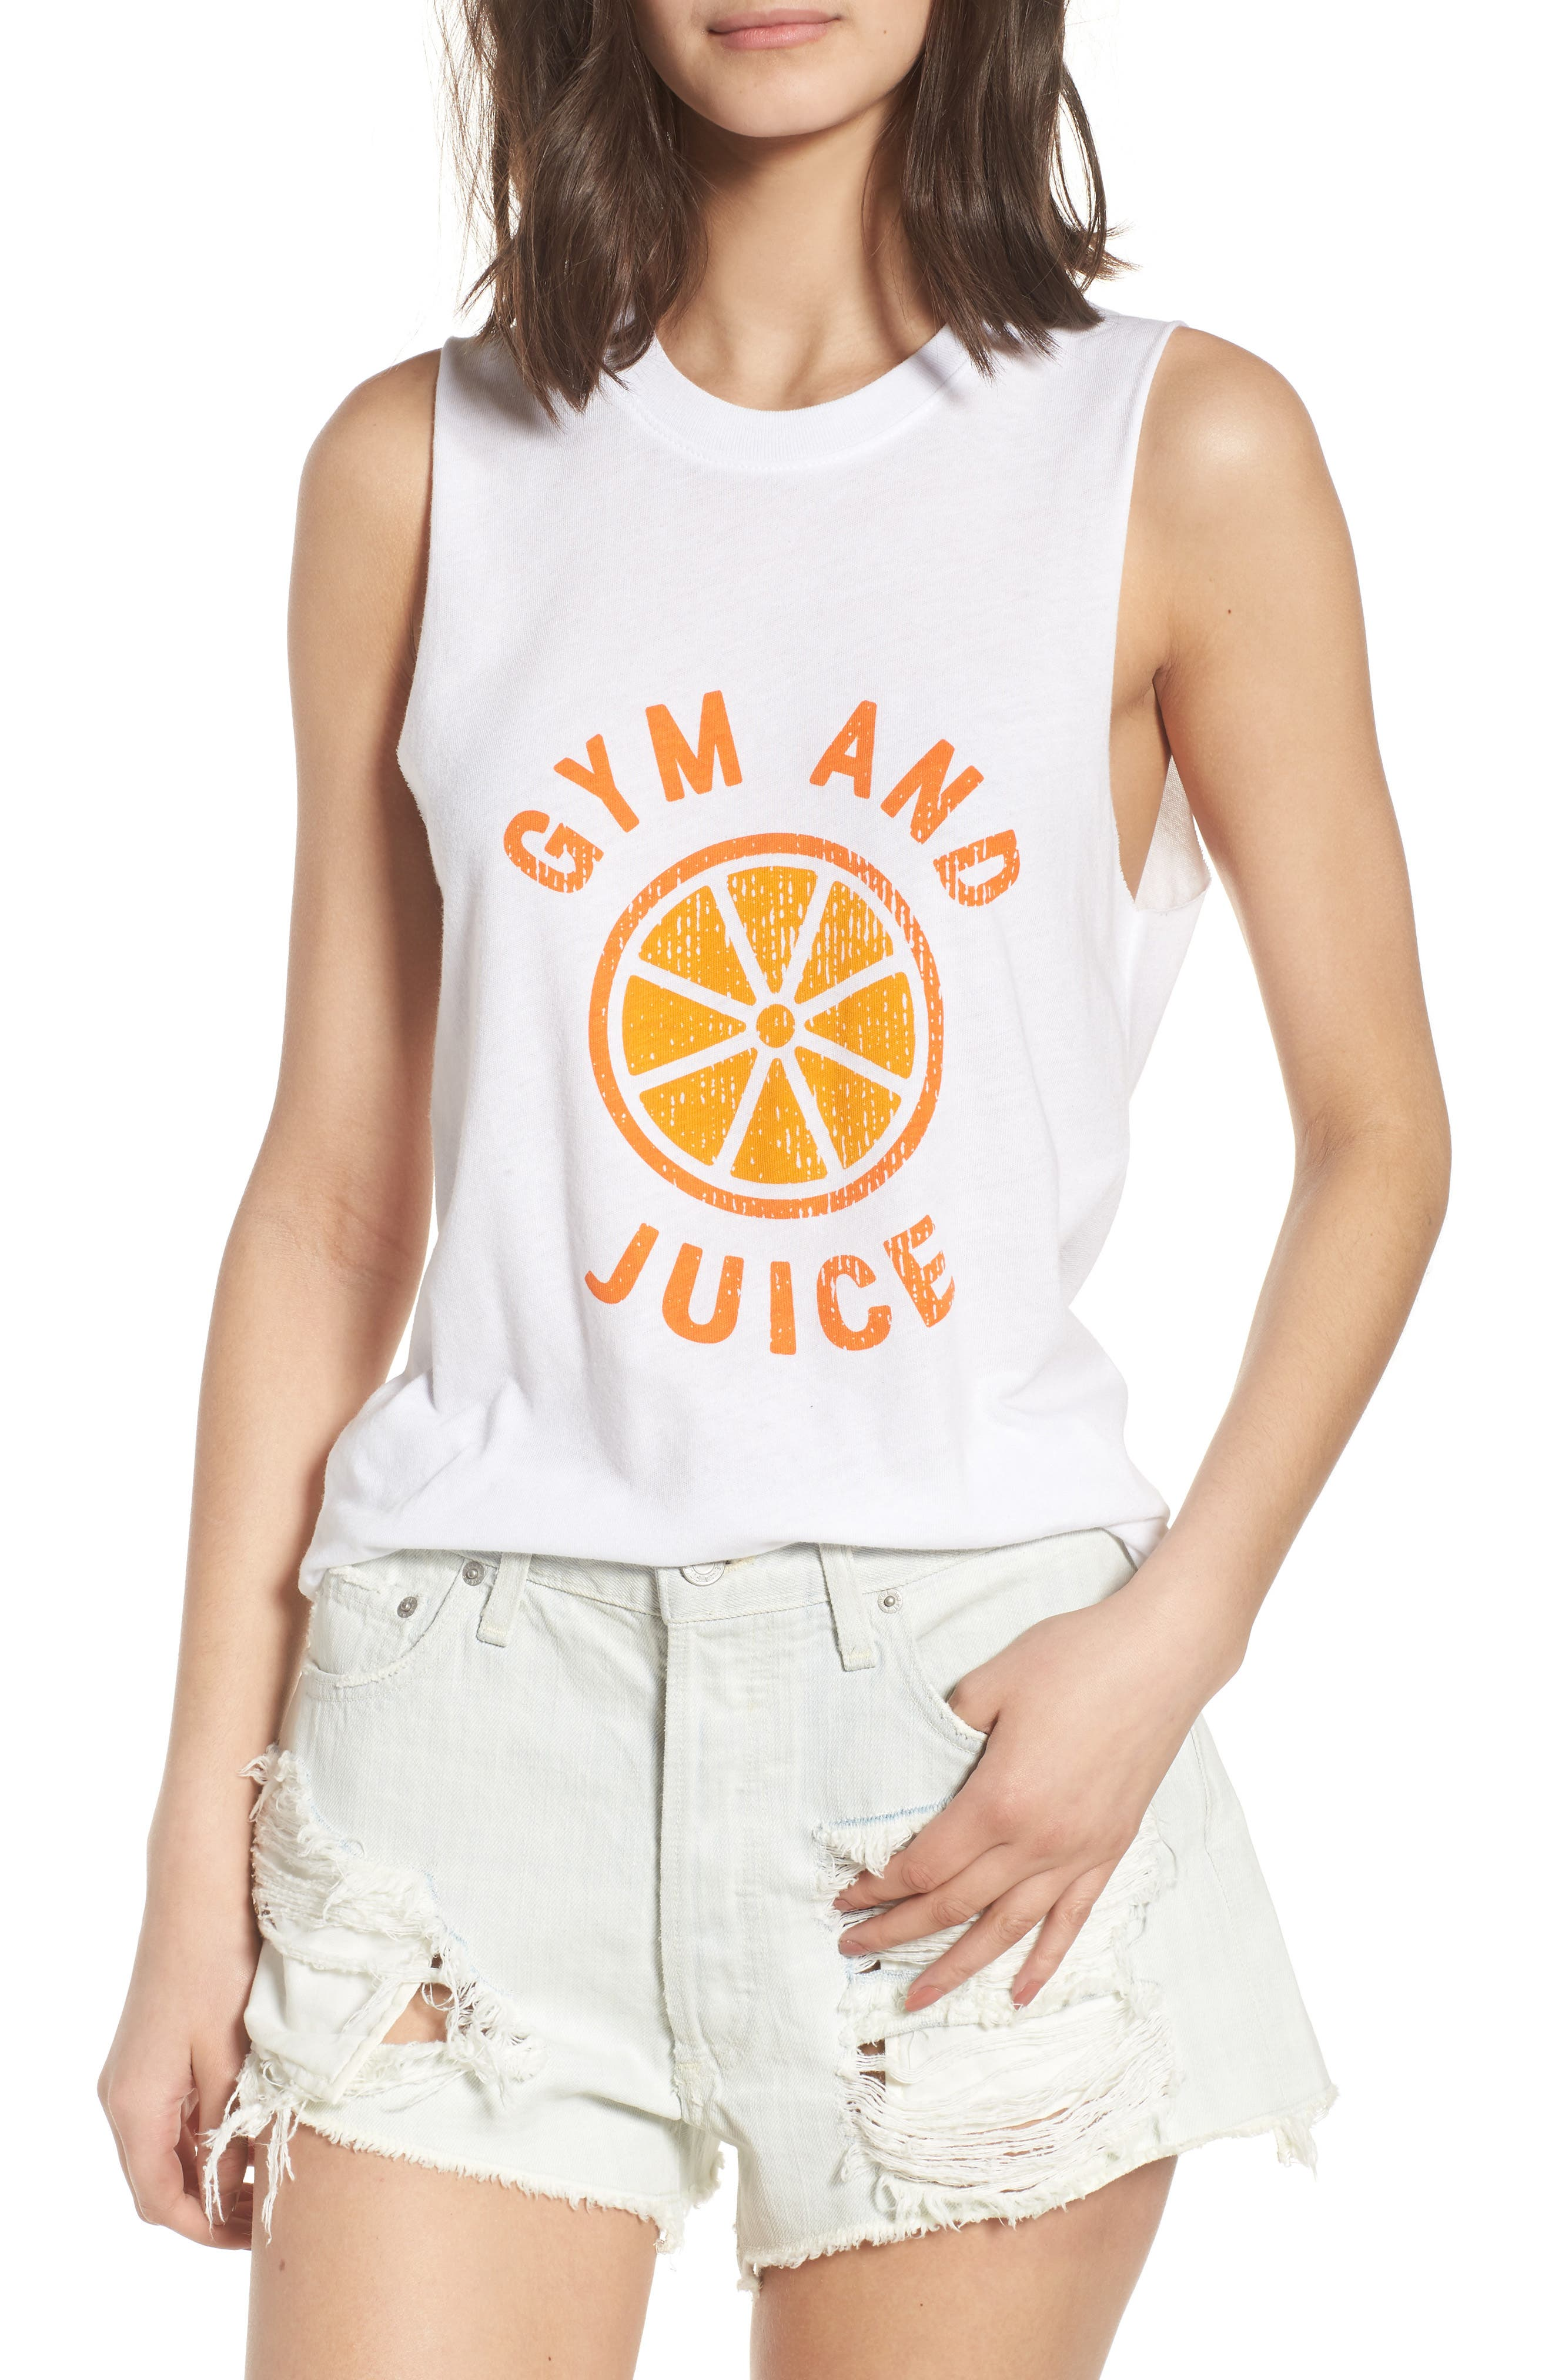 Gym and Juice Muscle Tank Top,                             Main thumbnail 1, color,                             White